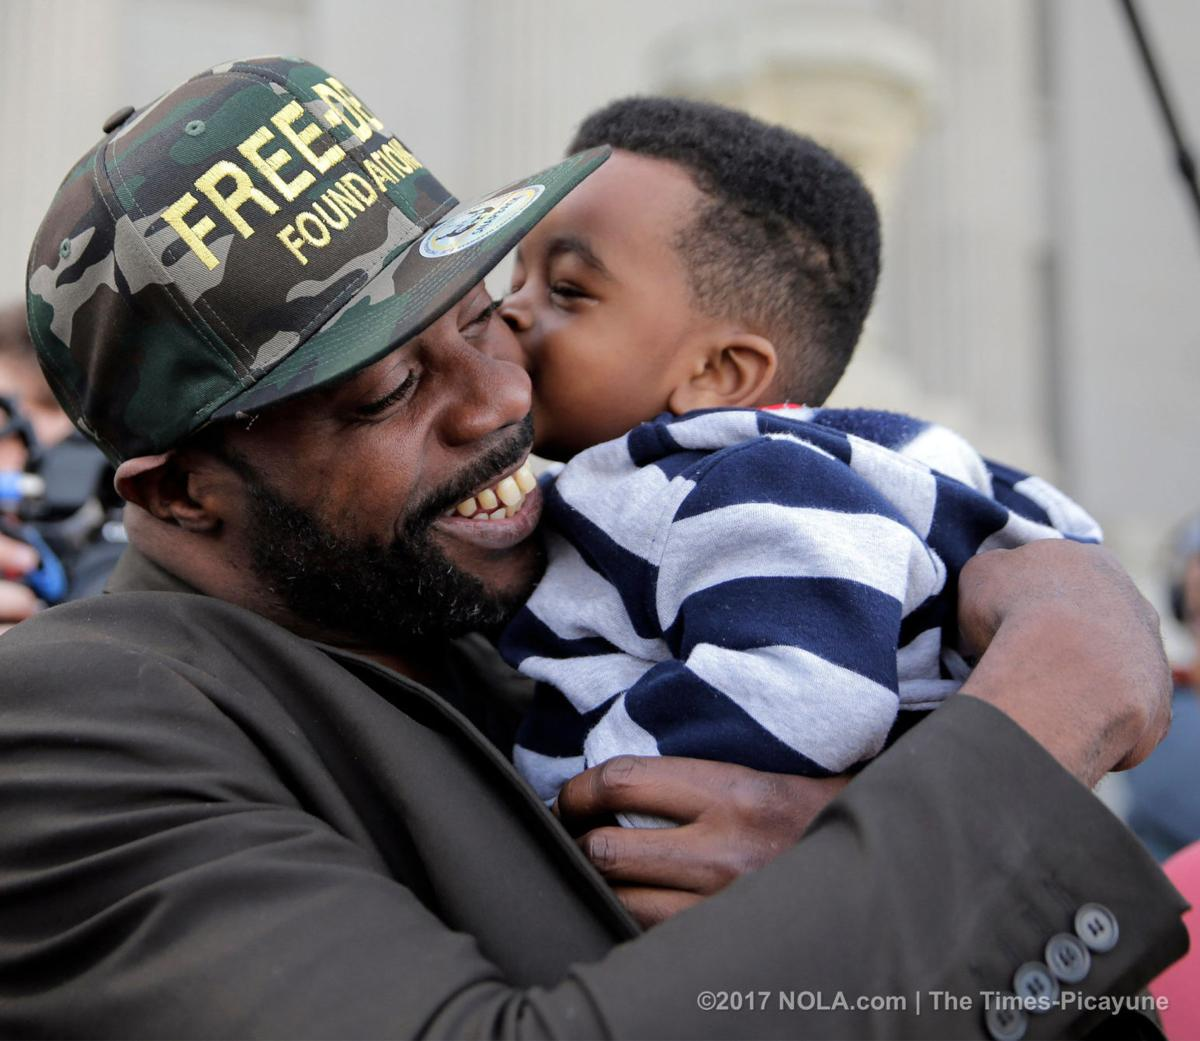 After 23 years in prison for wrongful conviction, Robert Jones sues Orleans DA